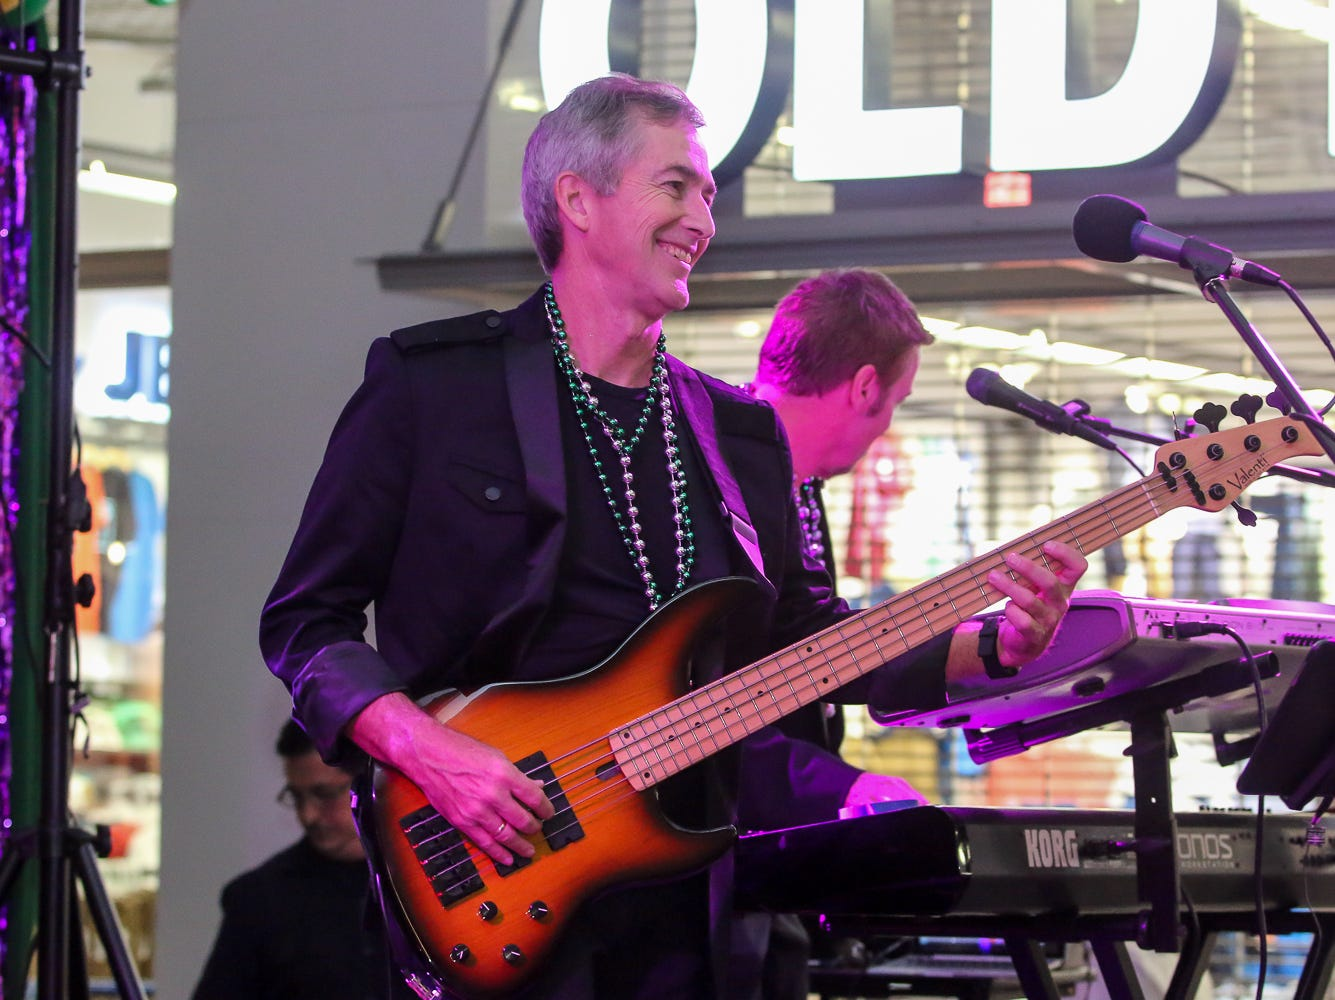 Journey 2 Mars performs during the 24th annual Cordova Mall Ball on Saturday, January 26, 2019. The event raises money for The Studer Family Children's Hospital at Sacred Heart.